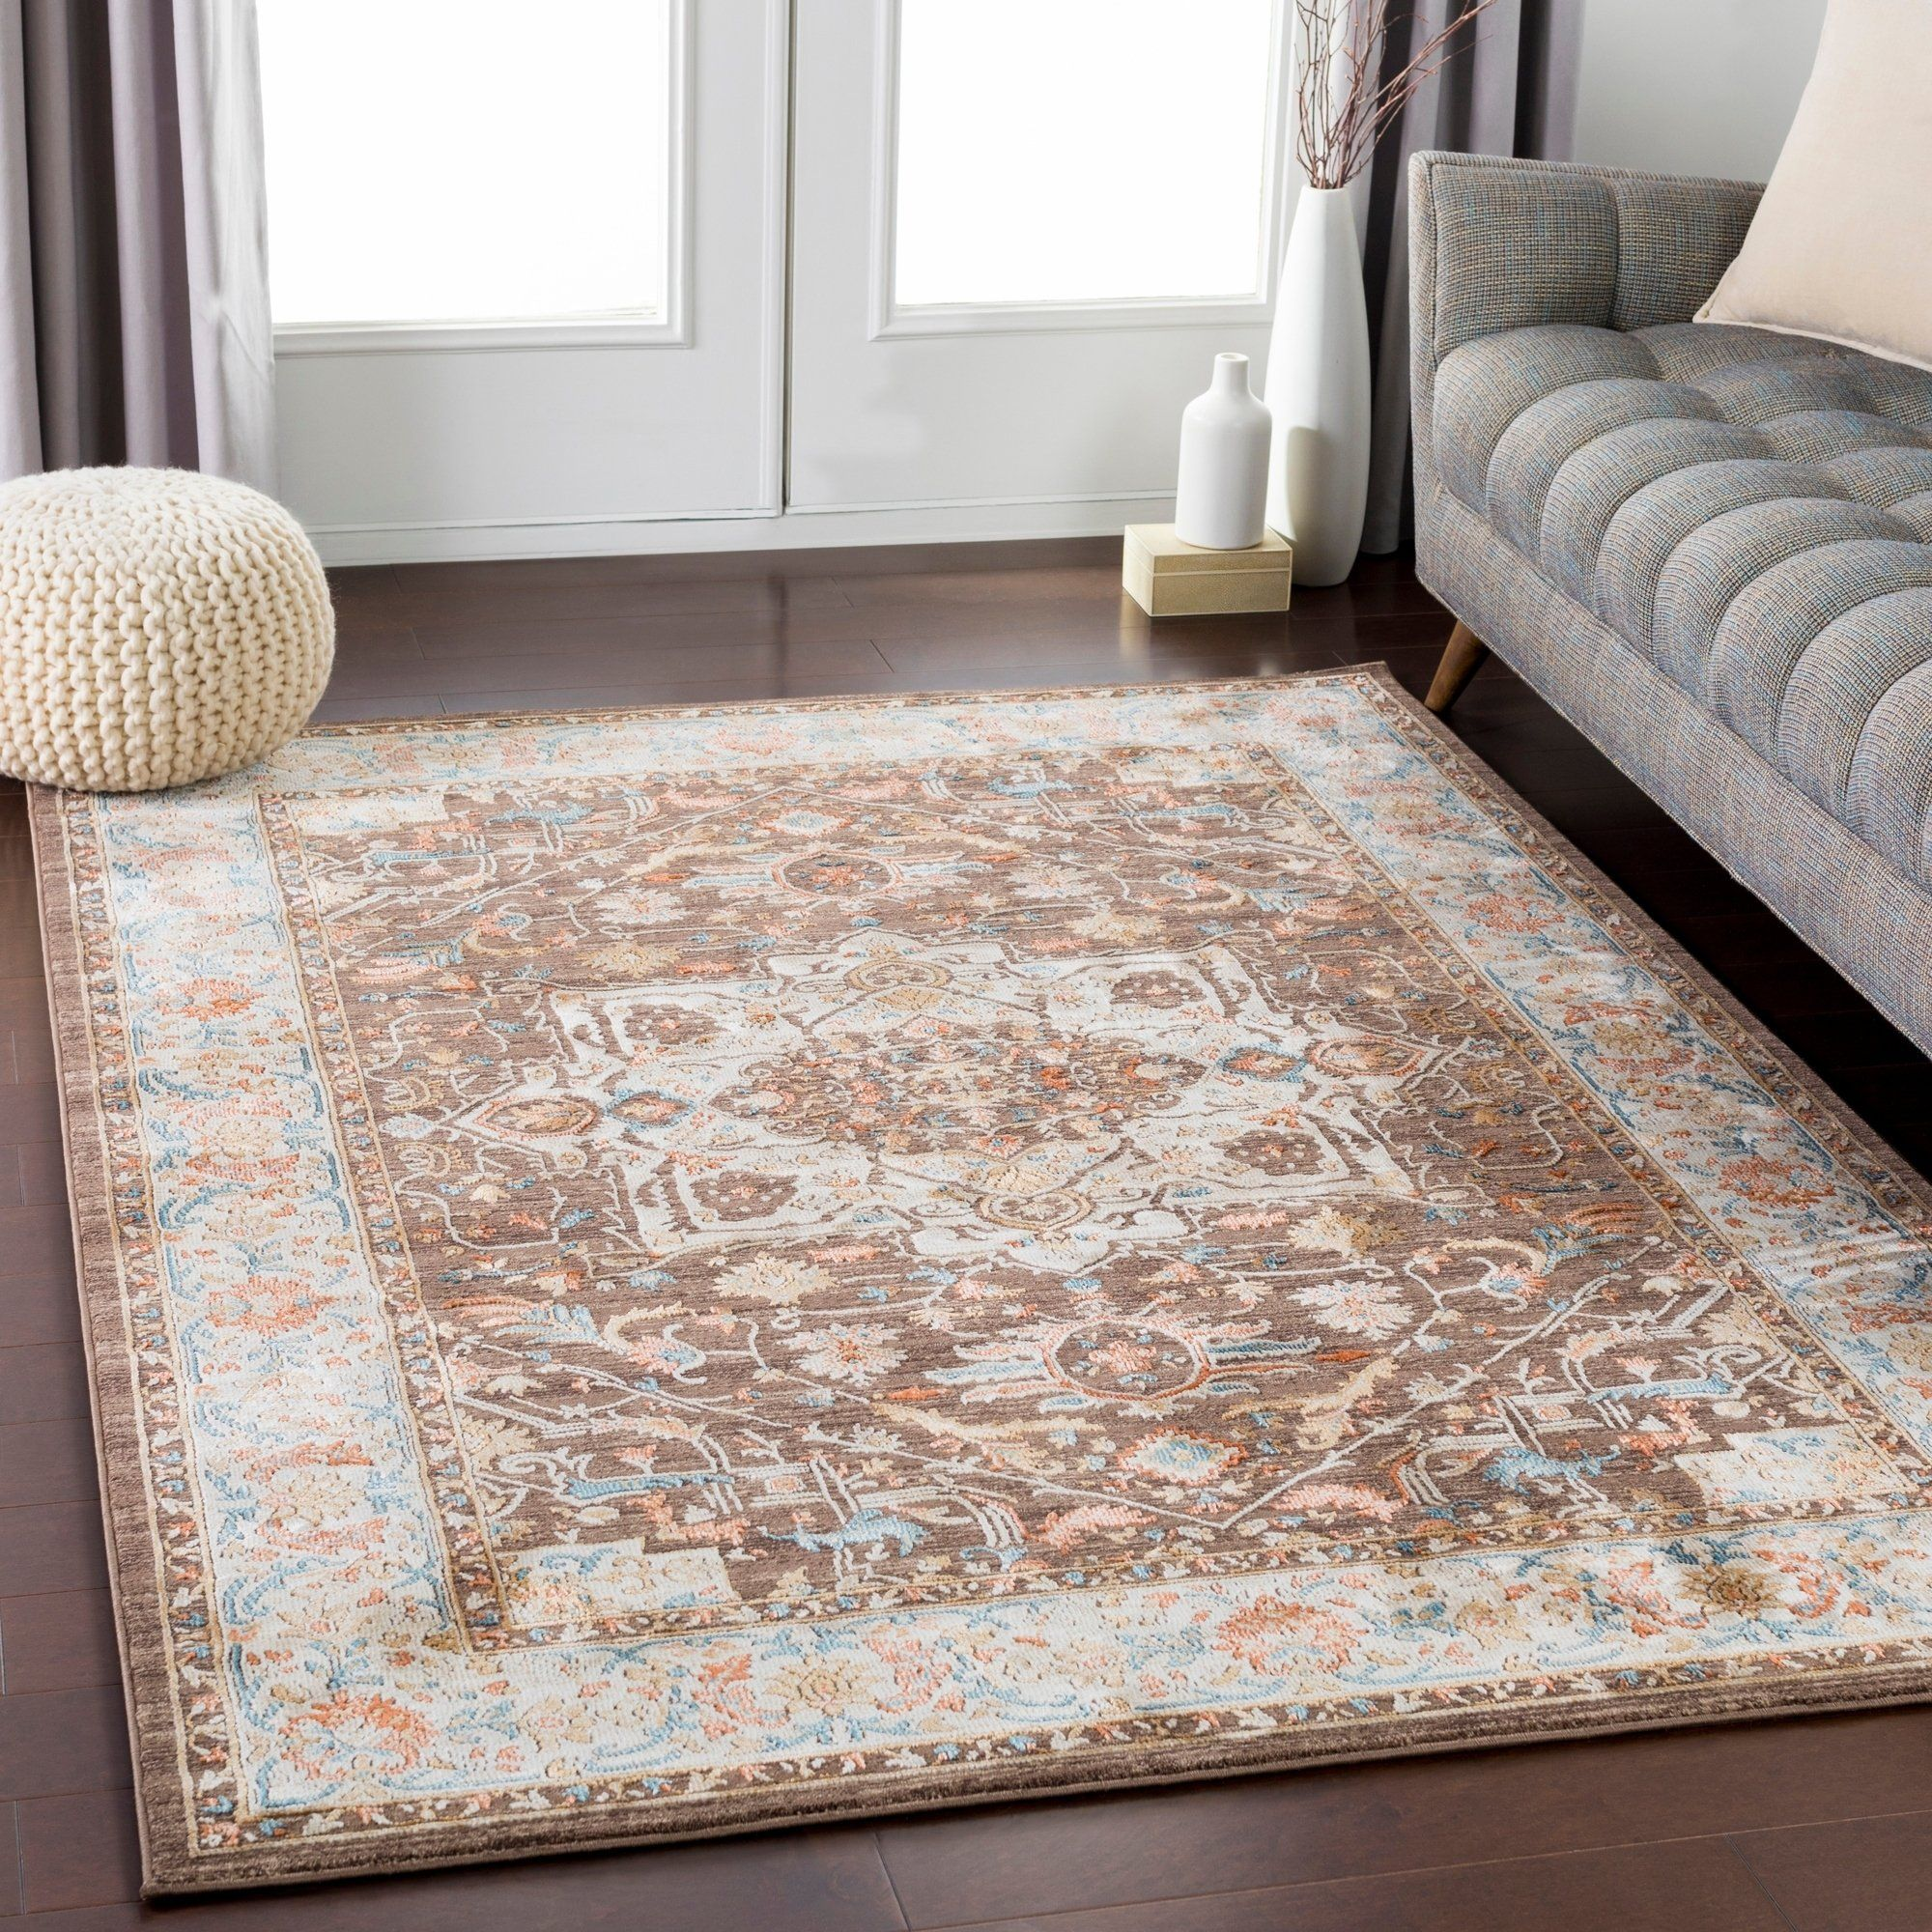 Online Shopping Bedding Furniture Electronics Jewelry Clothing More Area Rugs Traditional Area Rugs Rugs